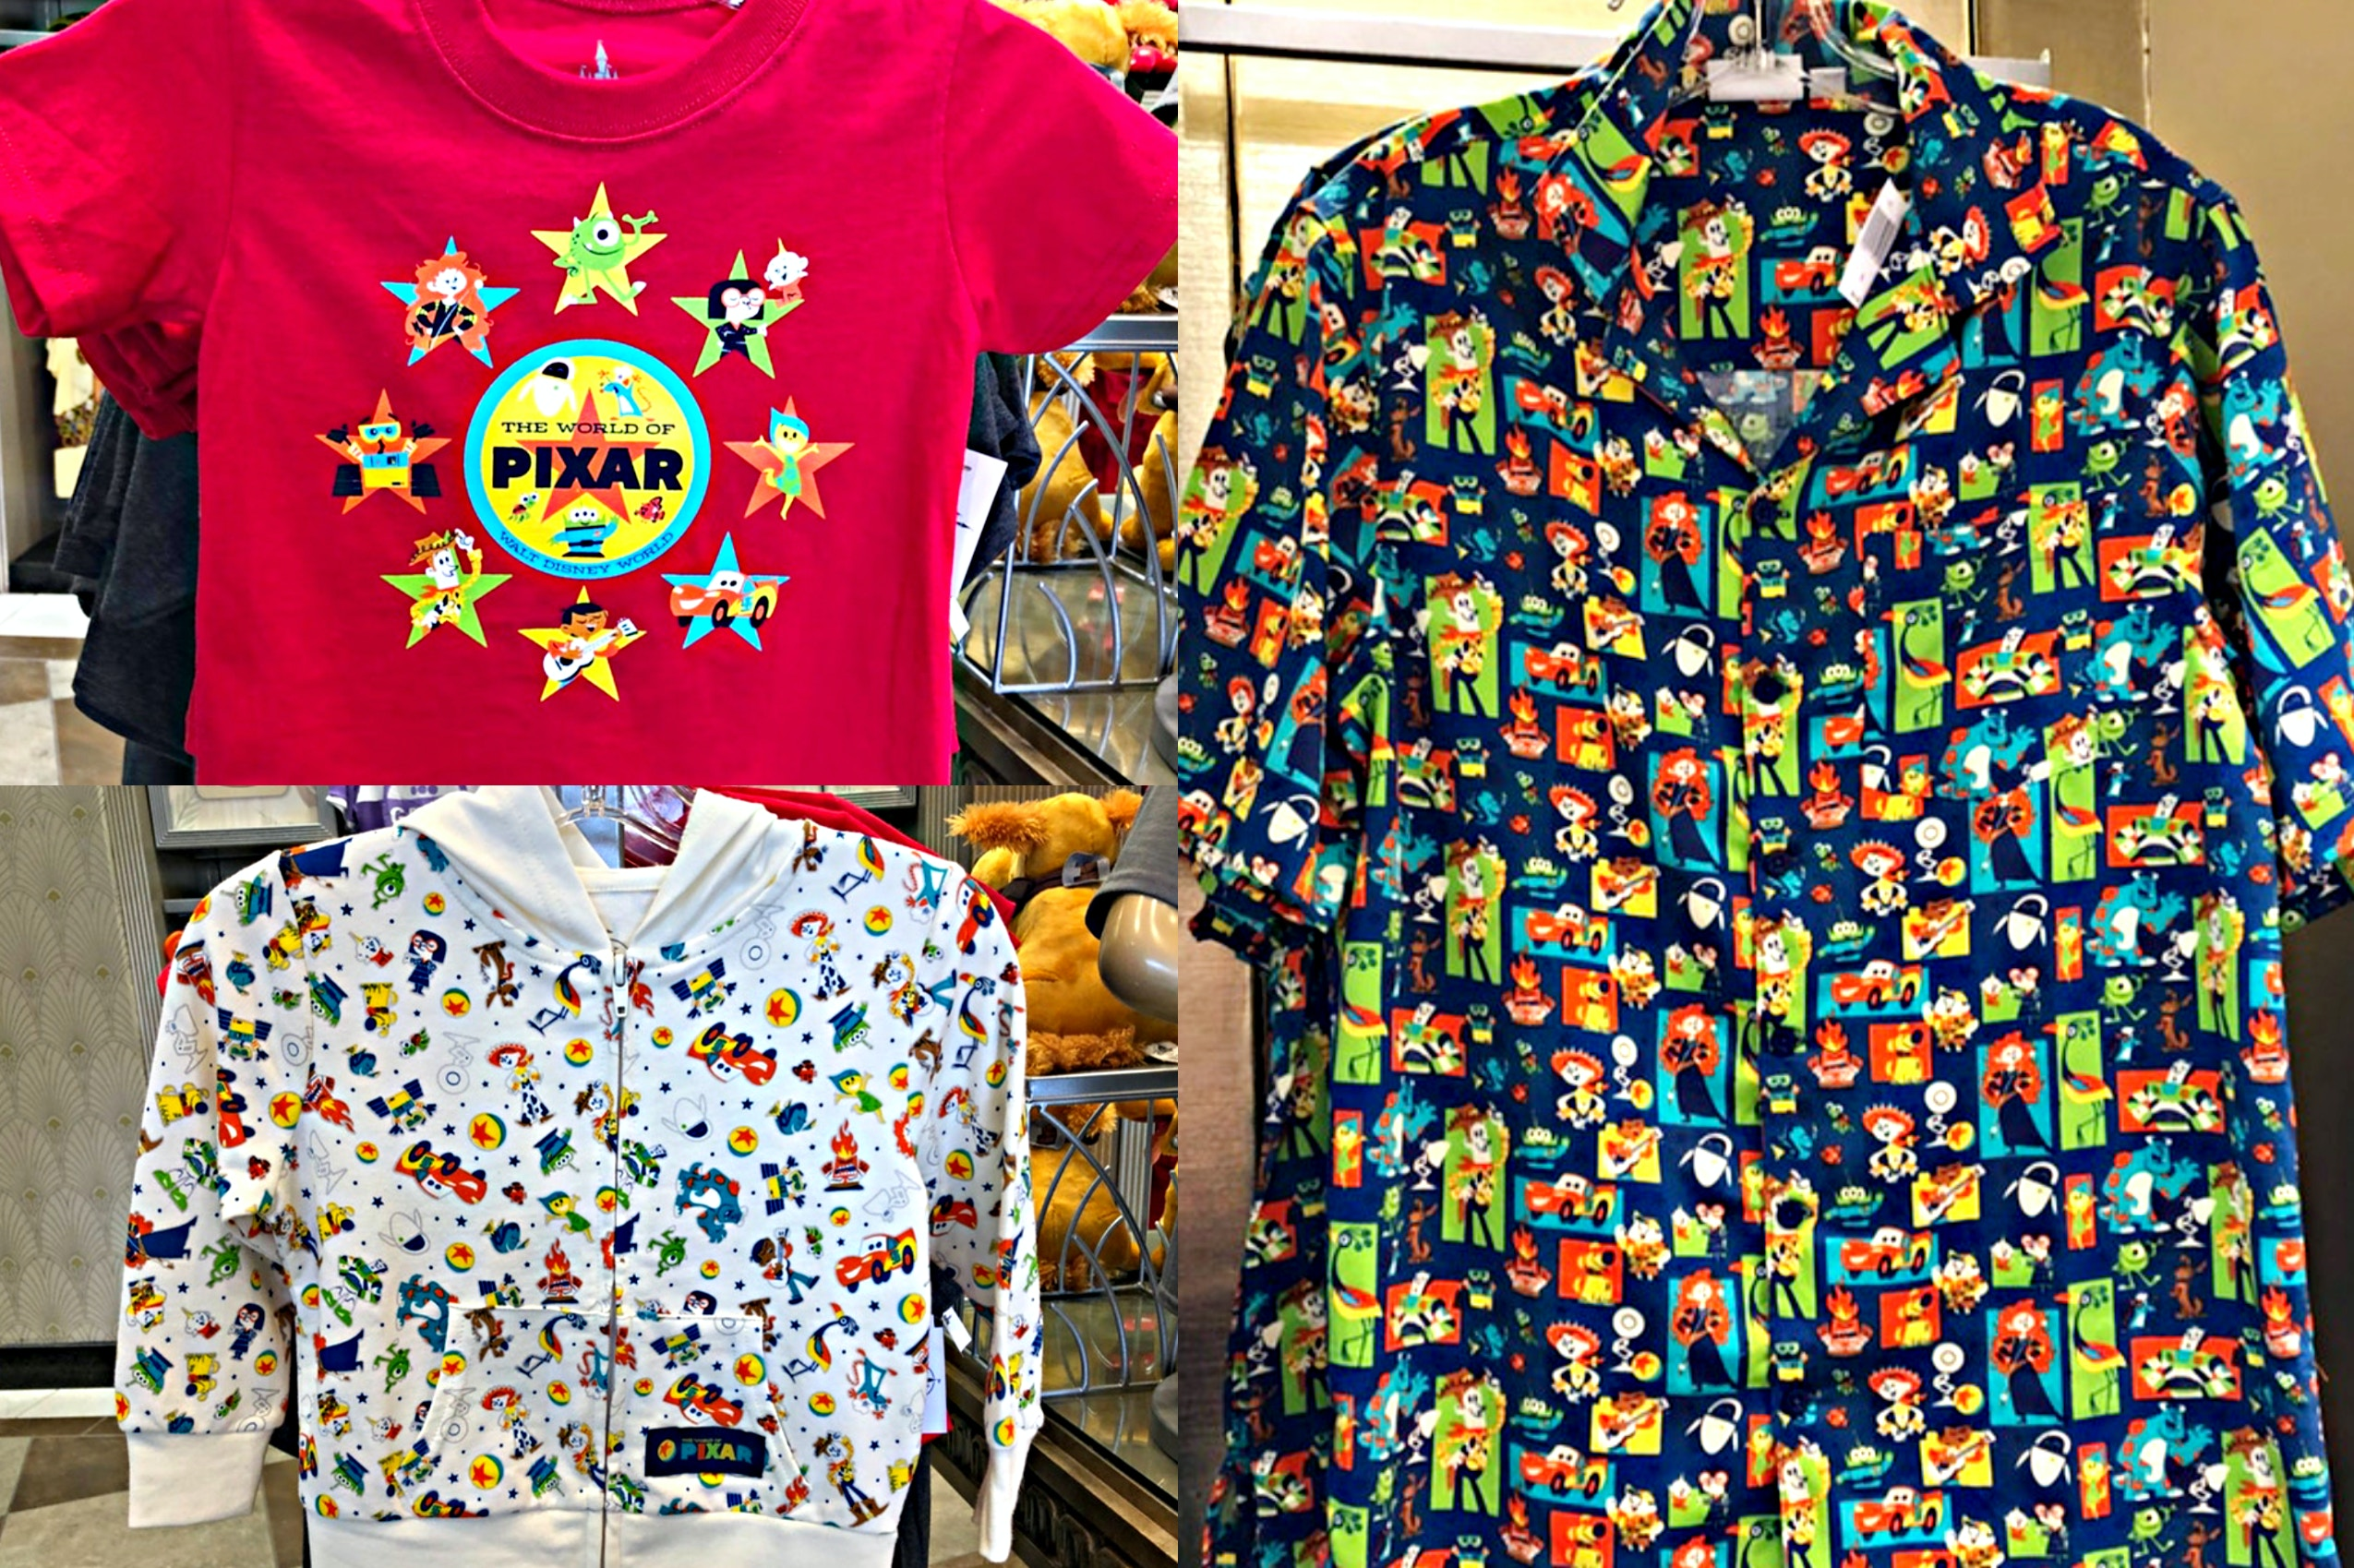 pixar-merch-collage-01.04.2020.jpg